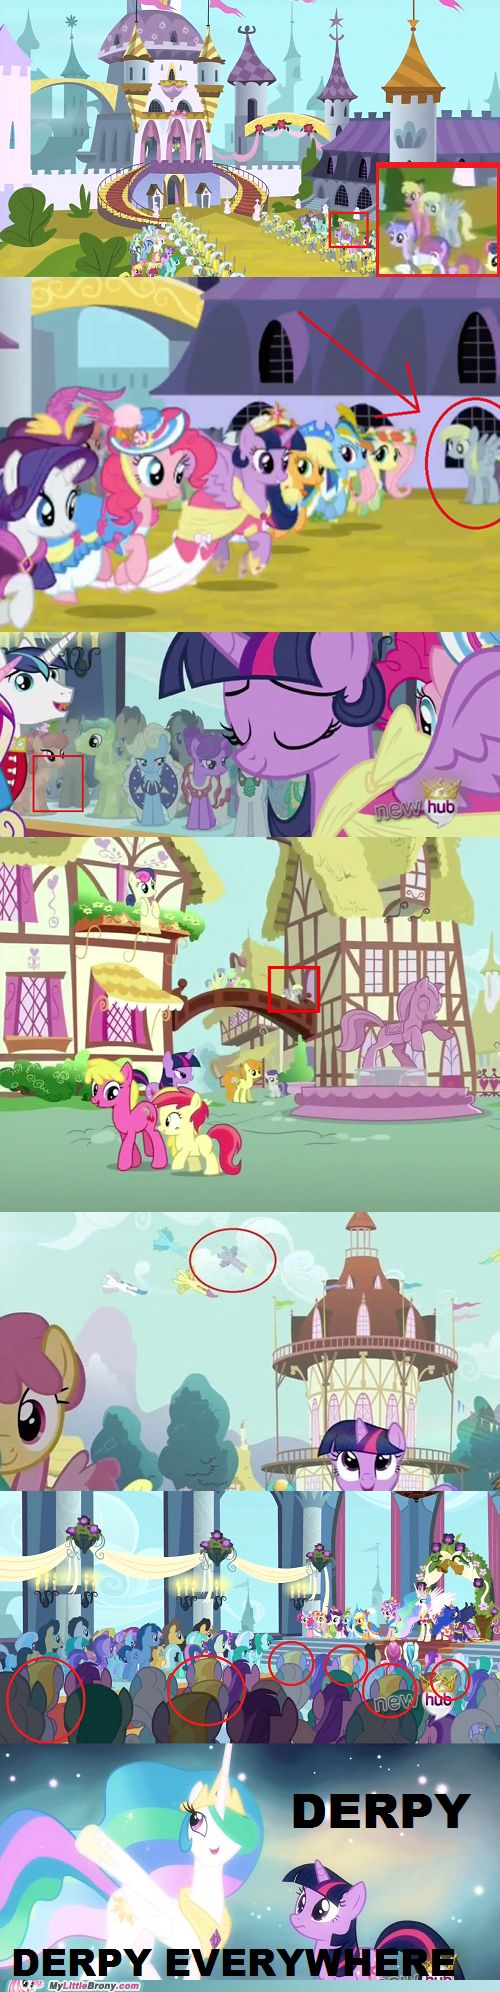 More Derpy! Although some of those aren't Derpy...